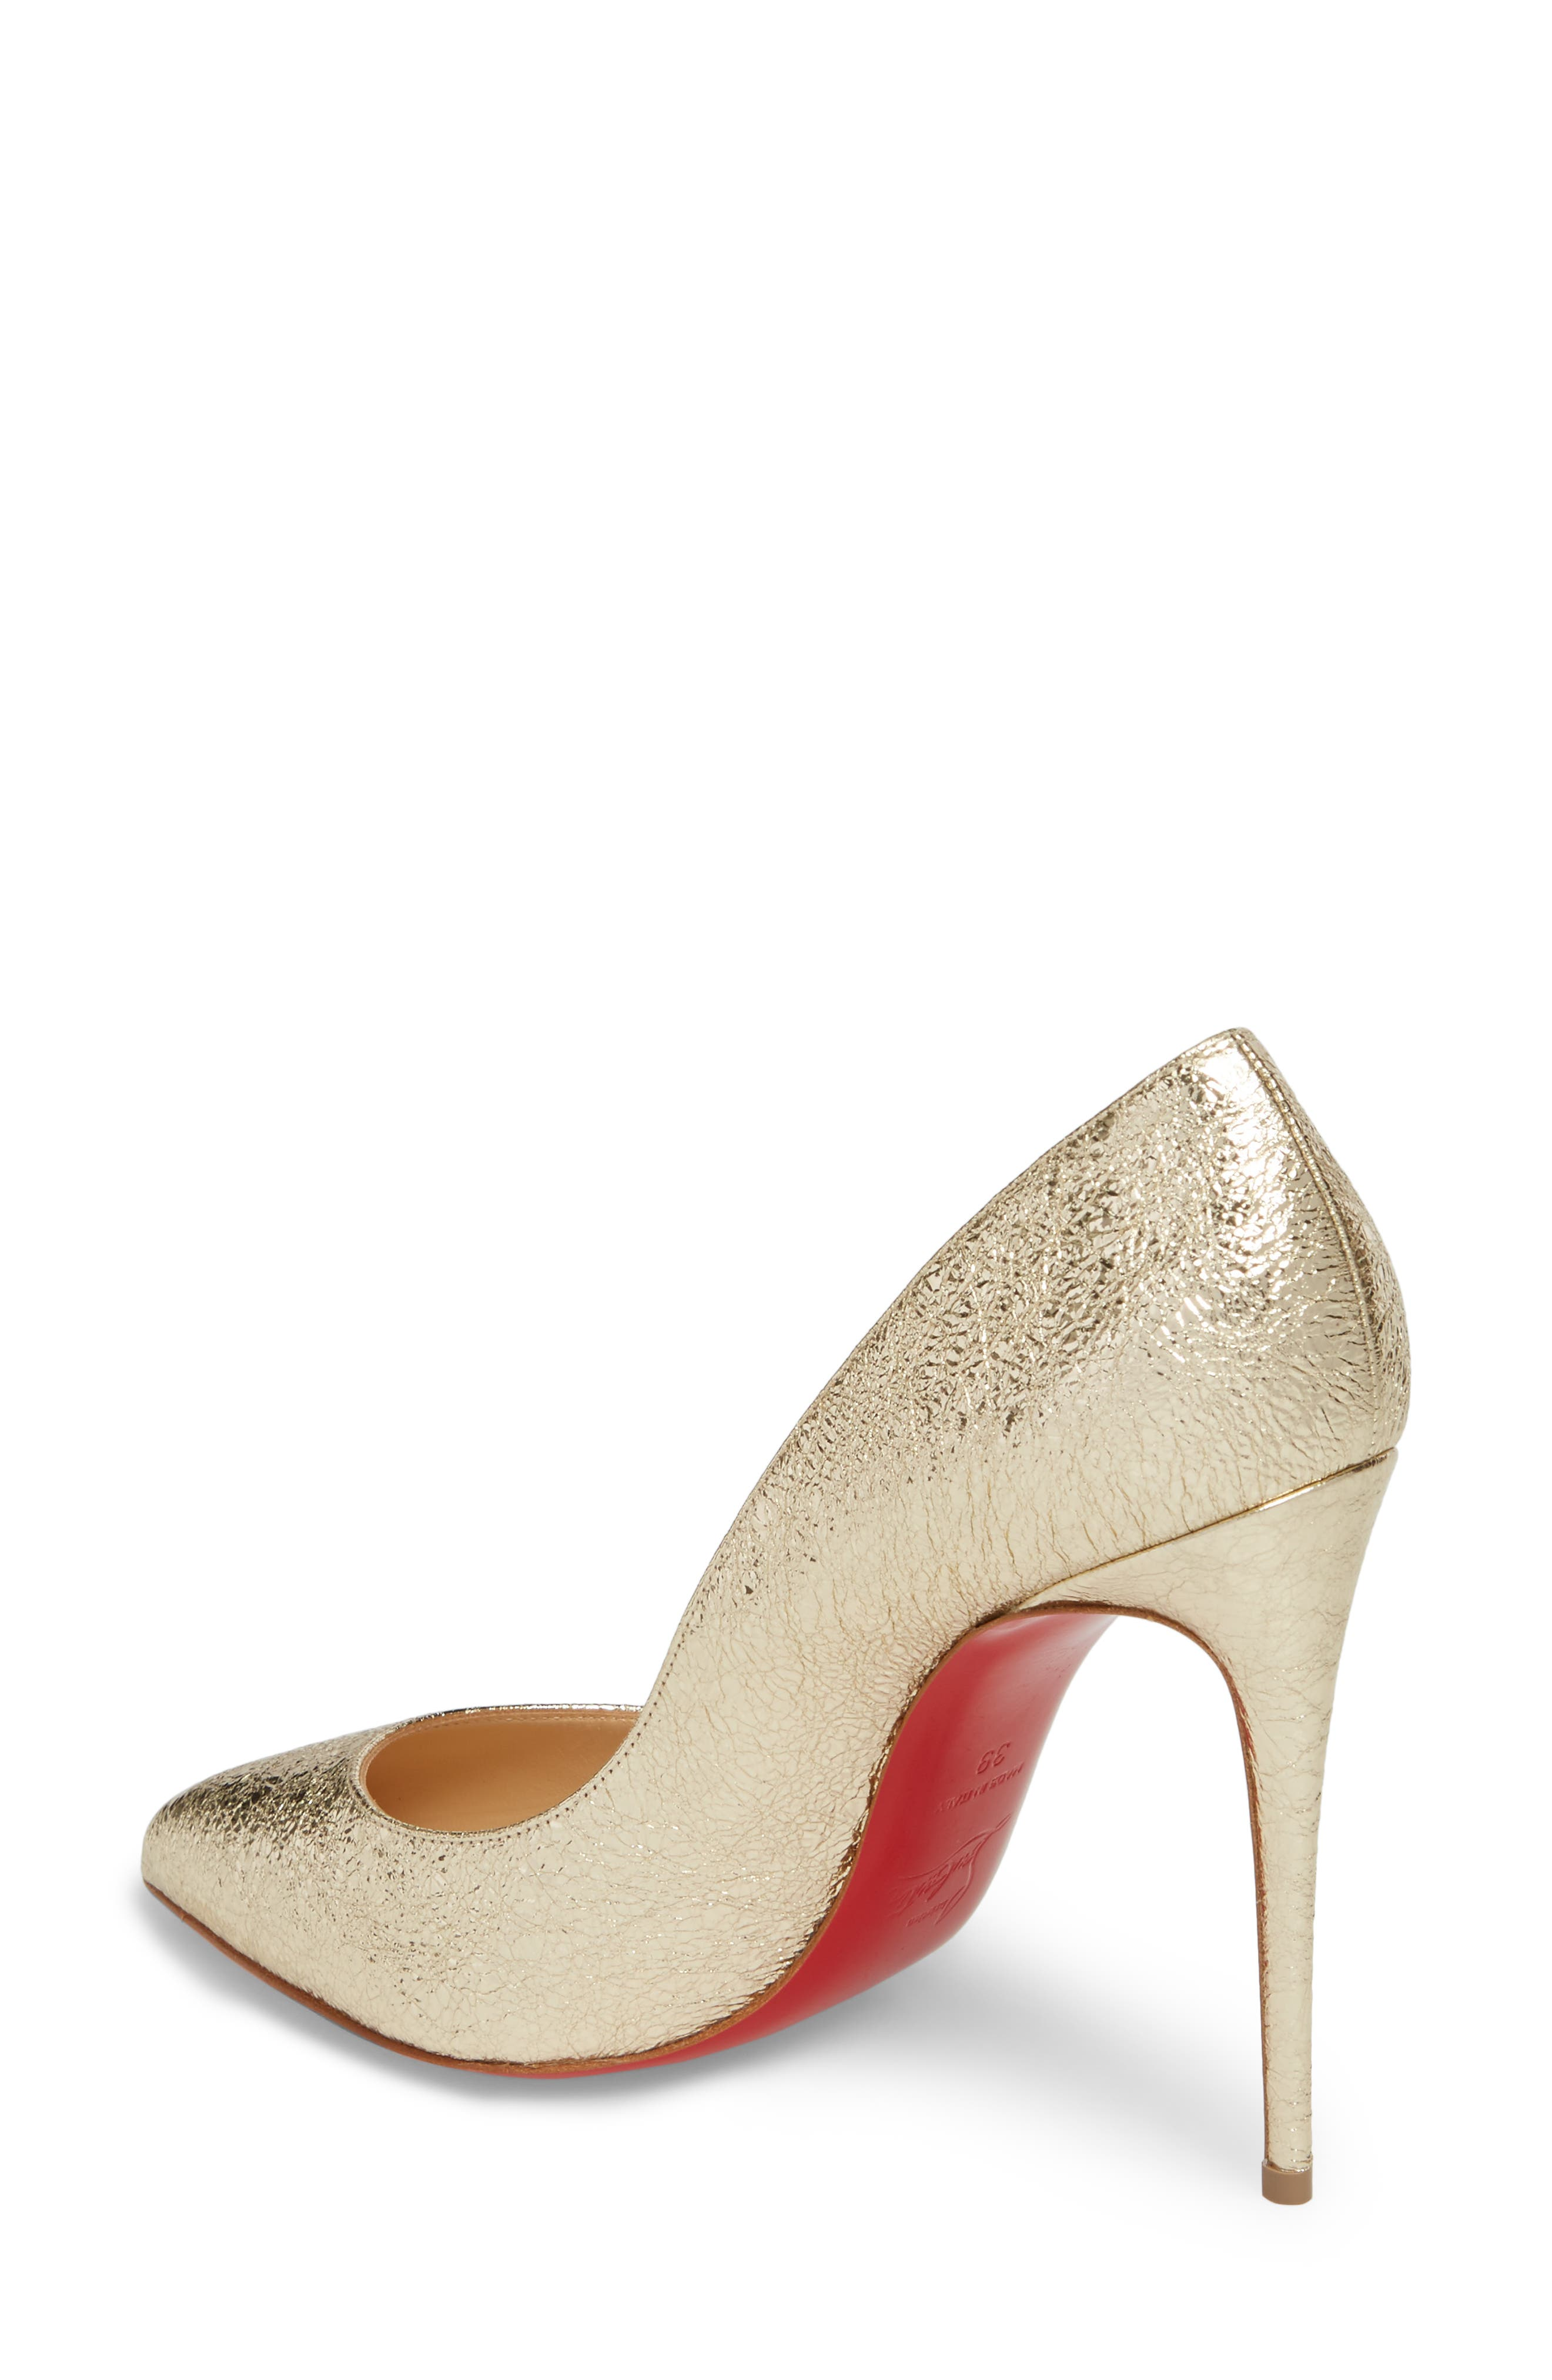 Pigalle Follies Pointy Toe Pump,                             Alternate thumbnail 2, color,                             040